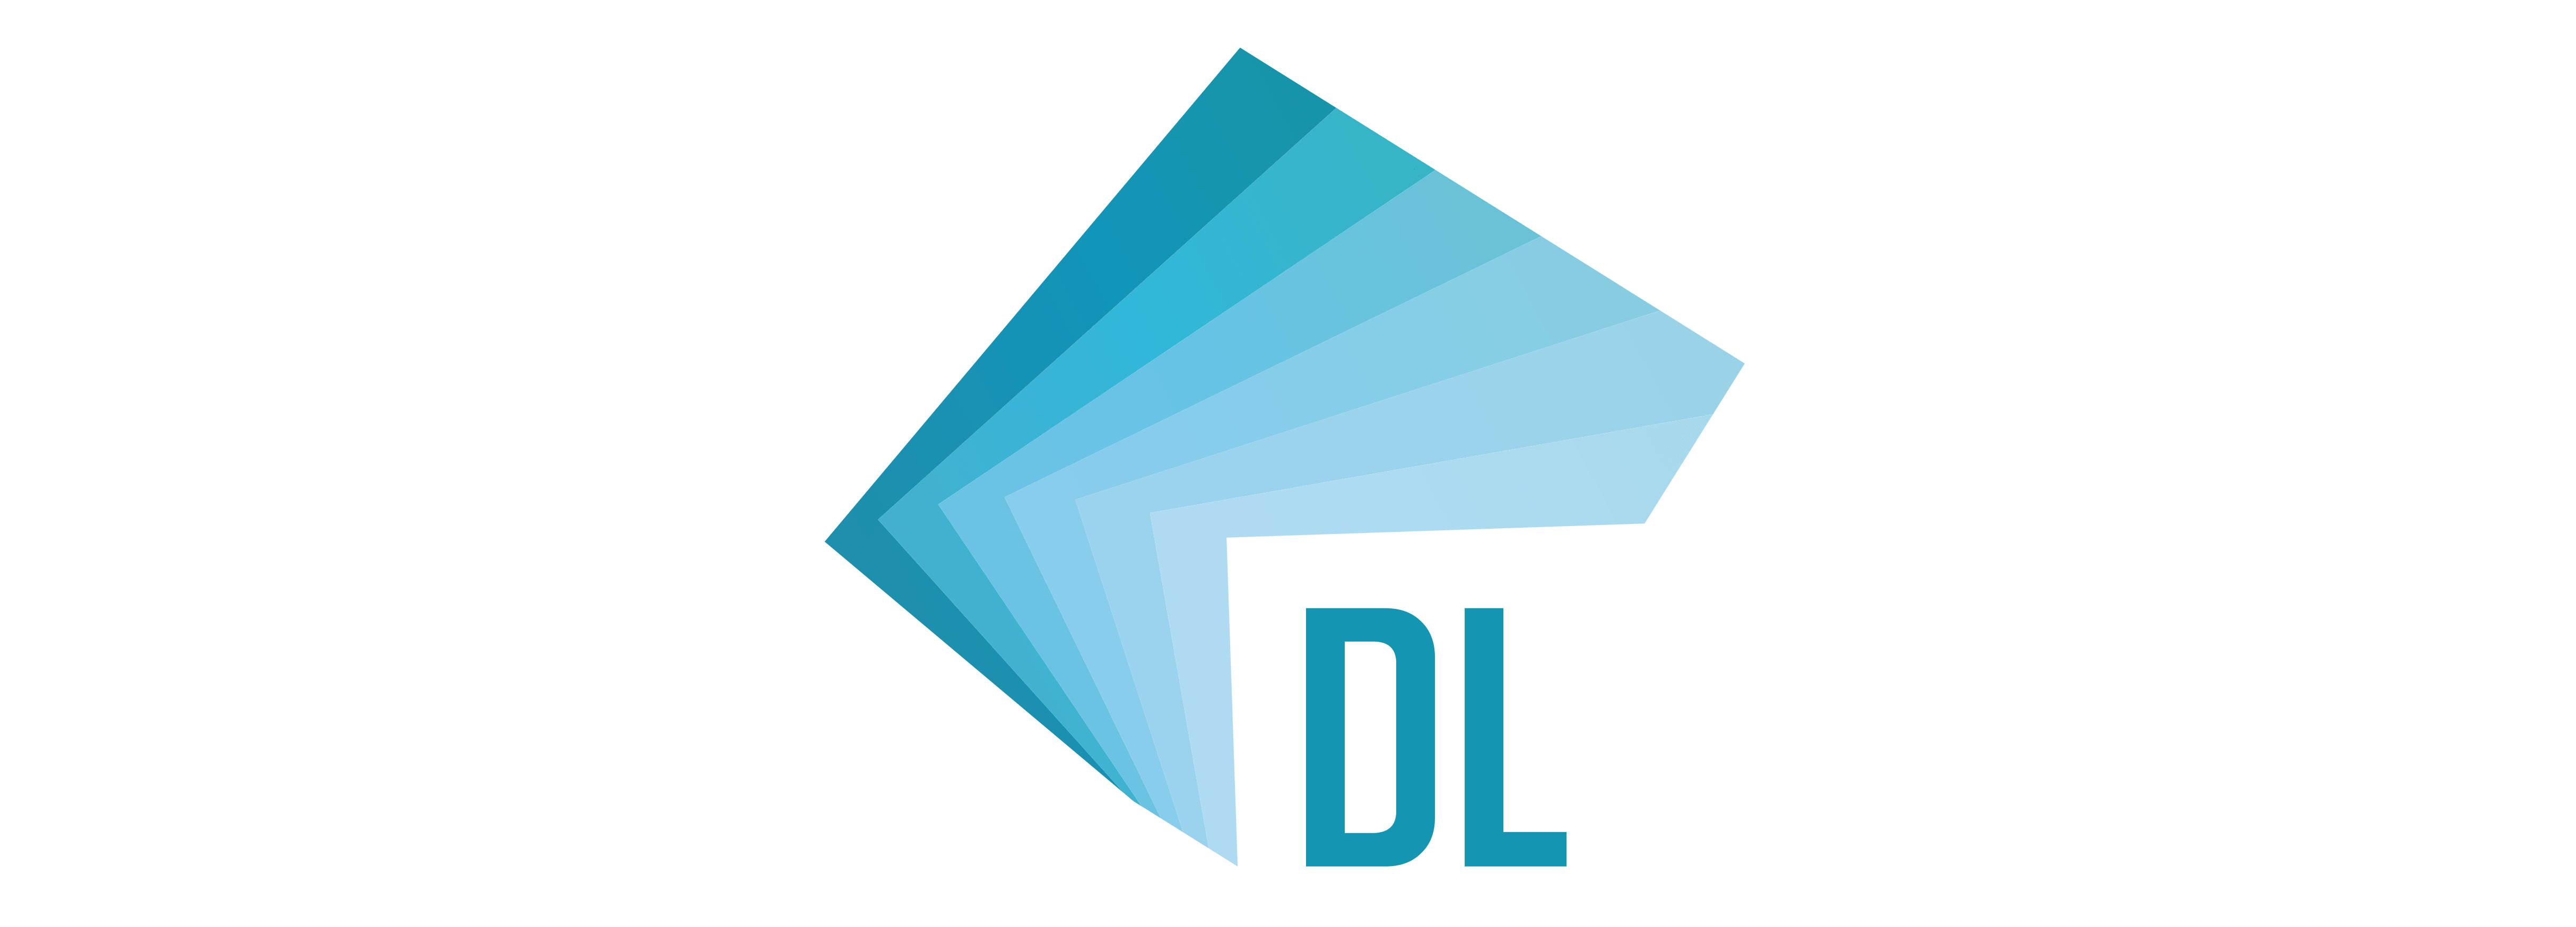 DL Technology Pte Ltd